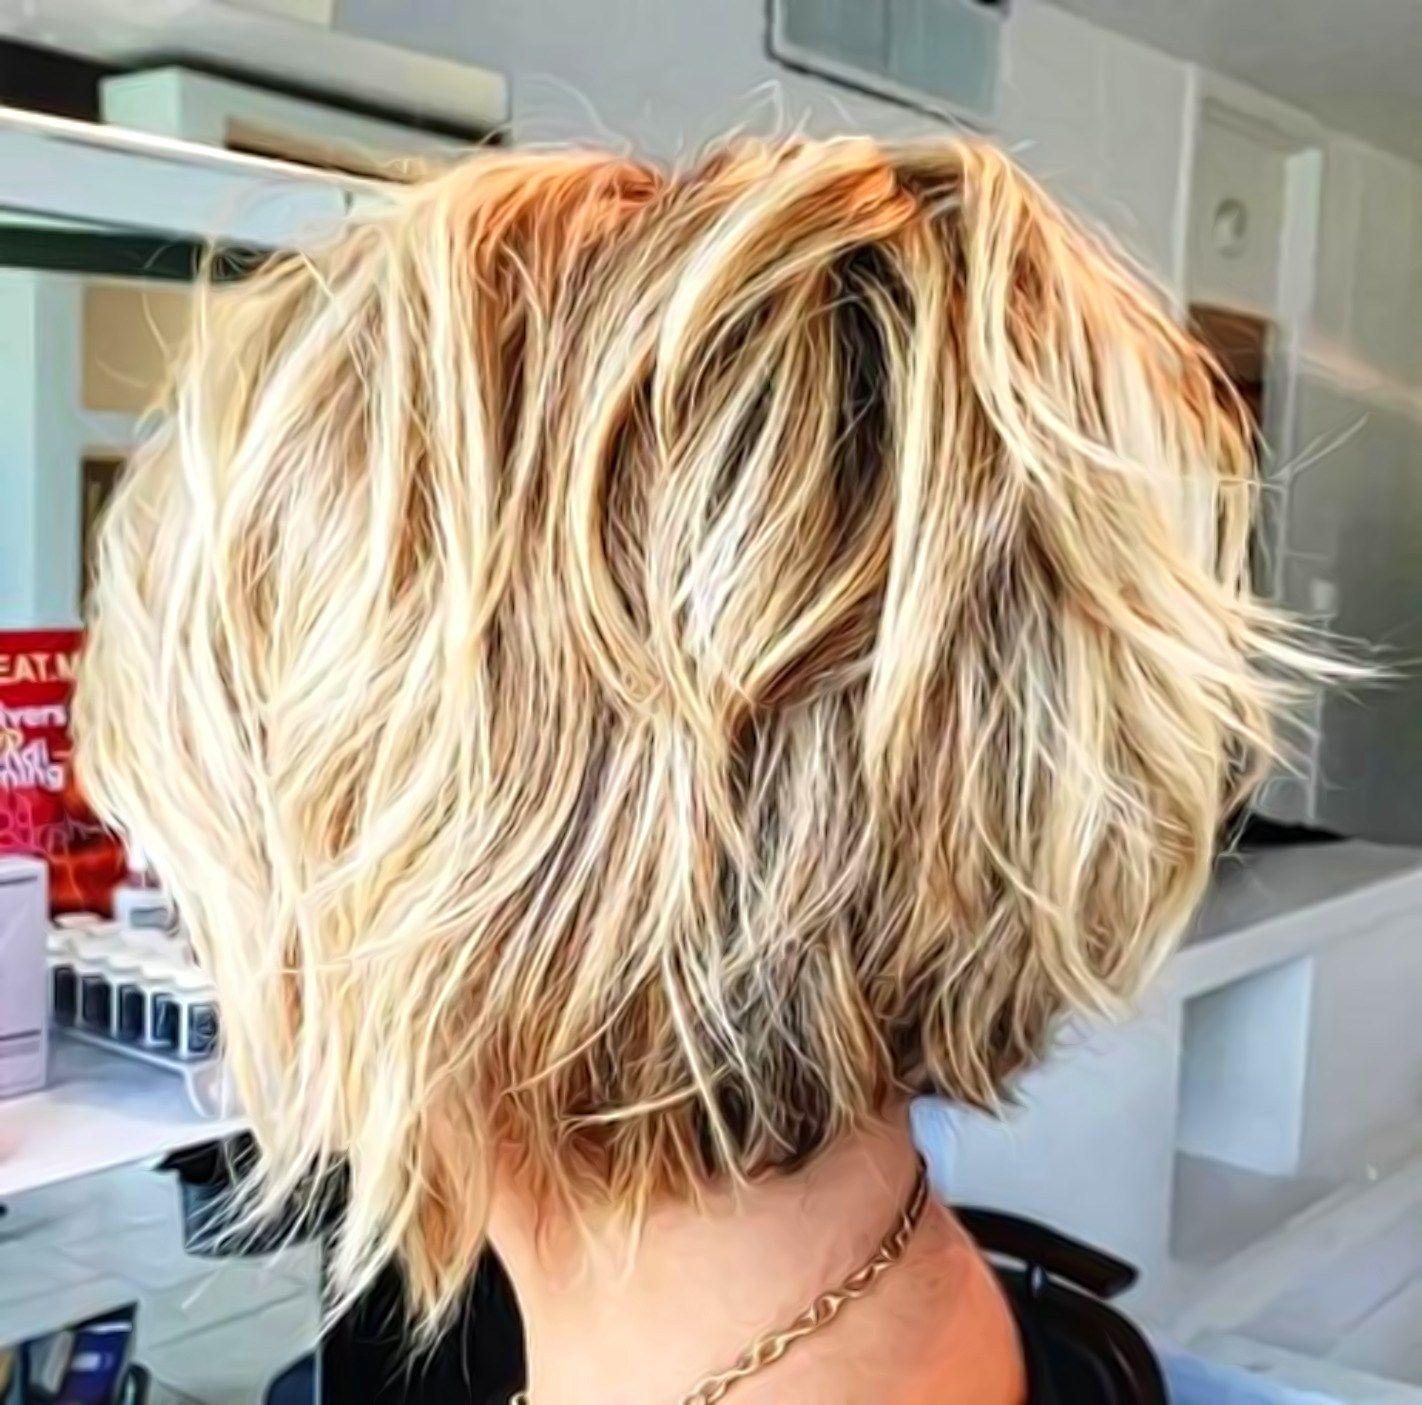 Photo of 36+ Chic Short Bob Hairstyles You Cant Miss